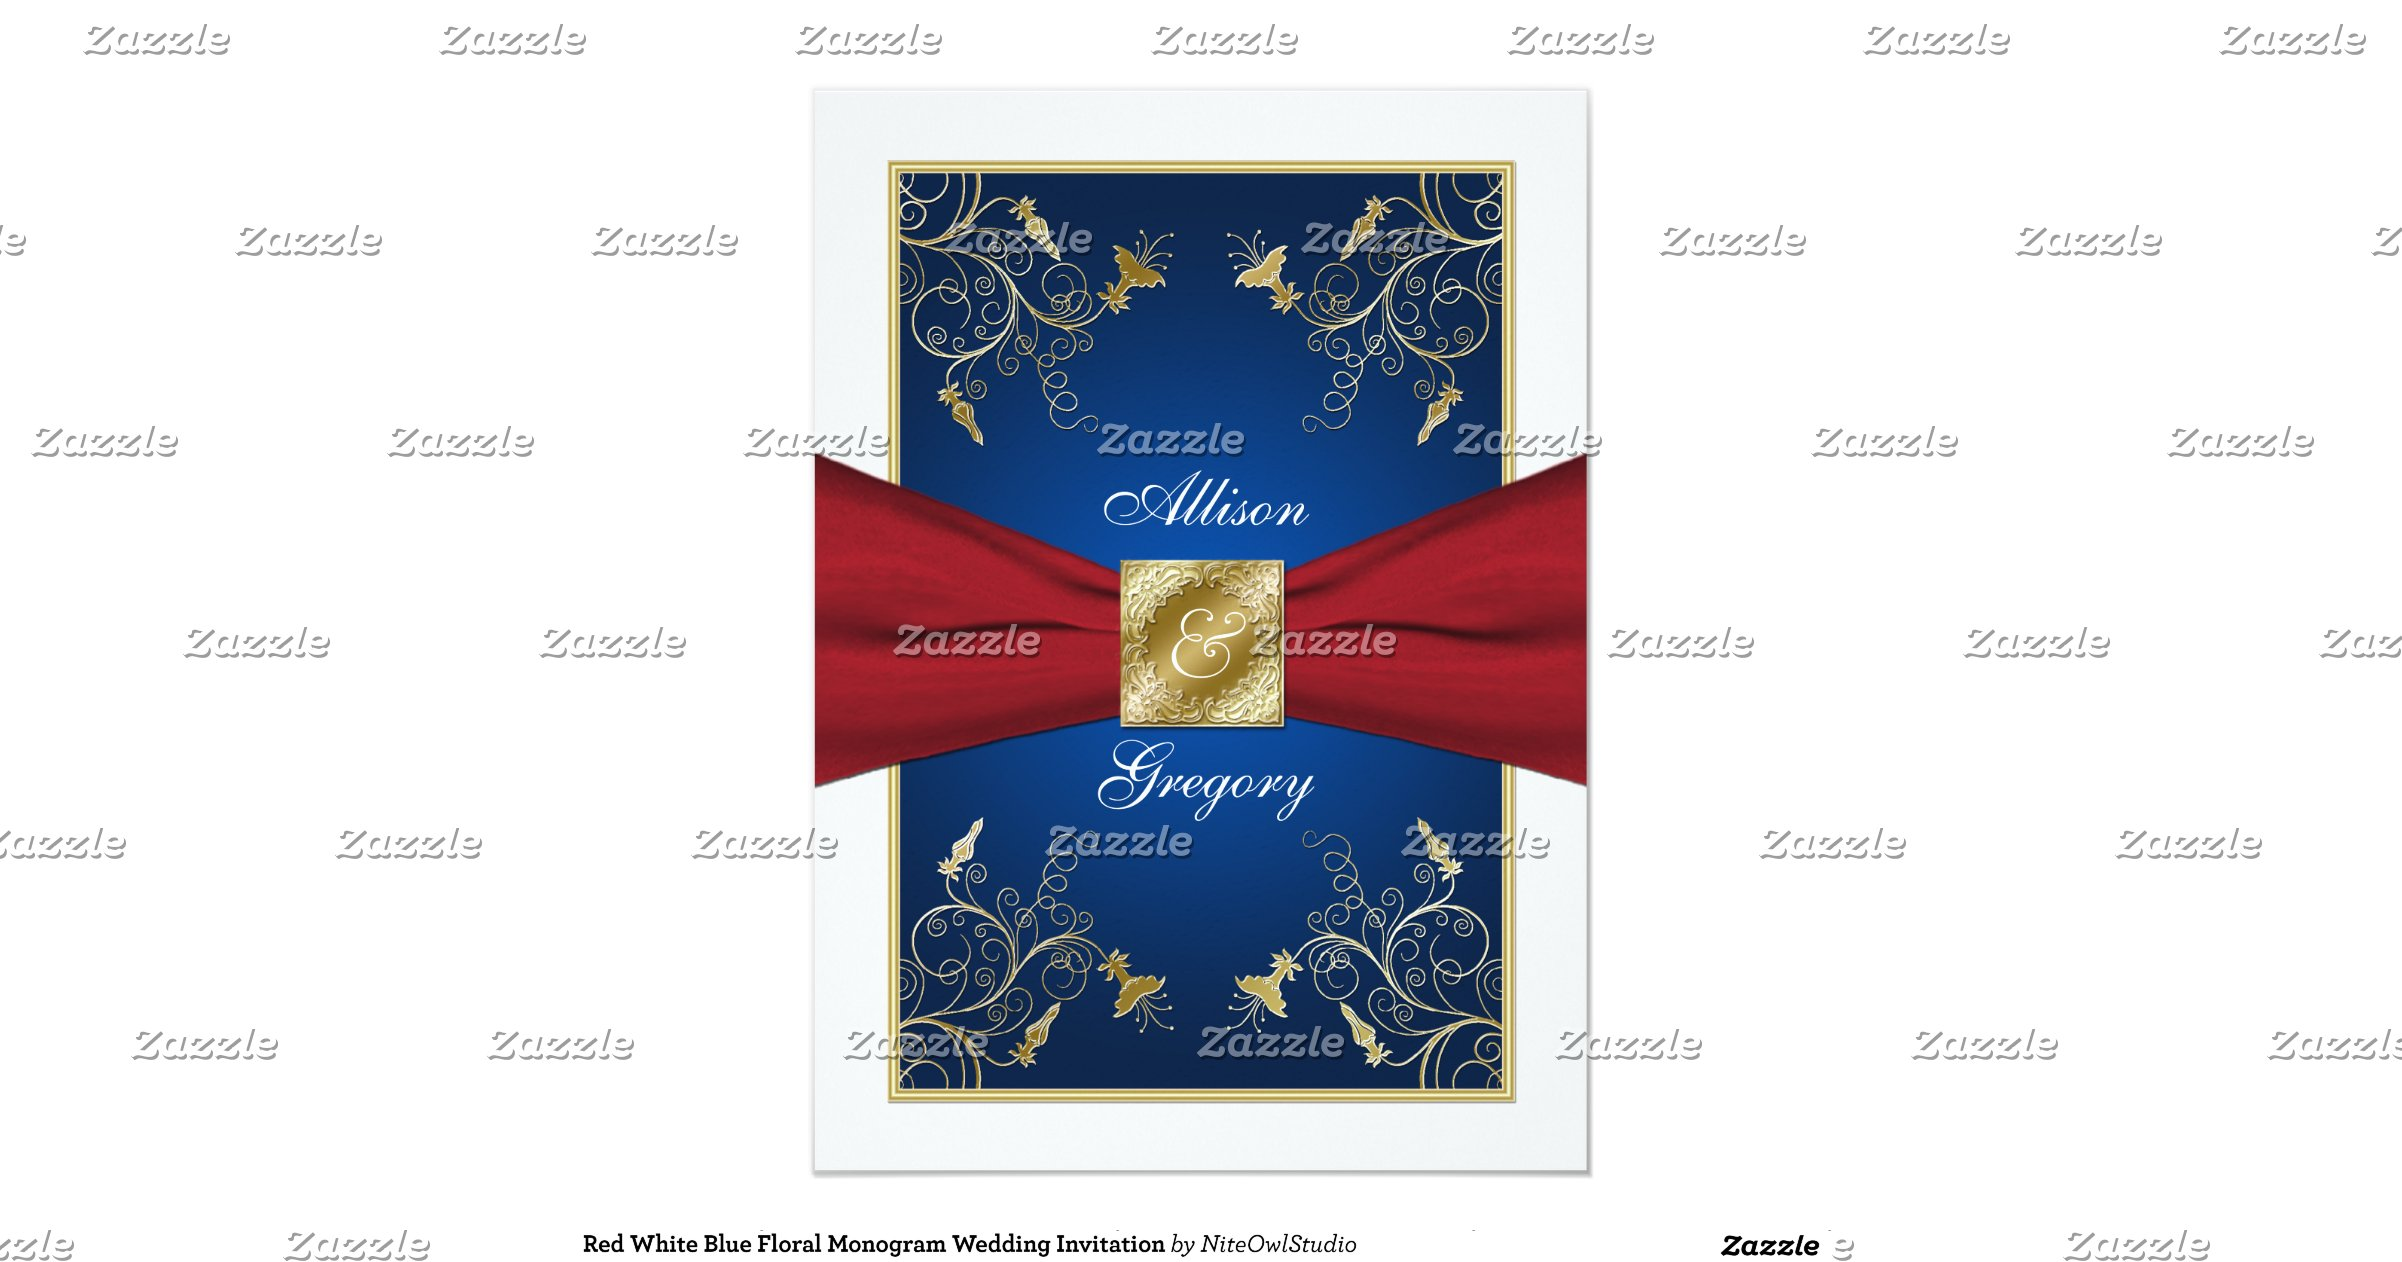 Red White And Blue Wedding Invitations: Red_white_blue_floral_monogram_wedding_invitation